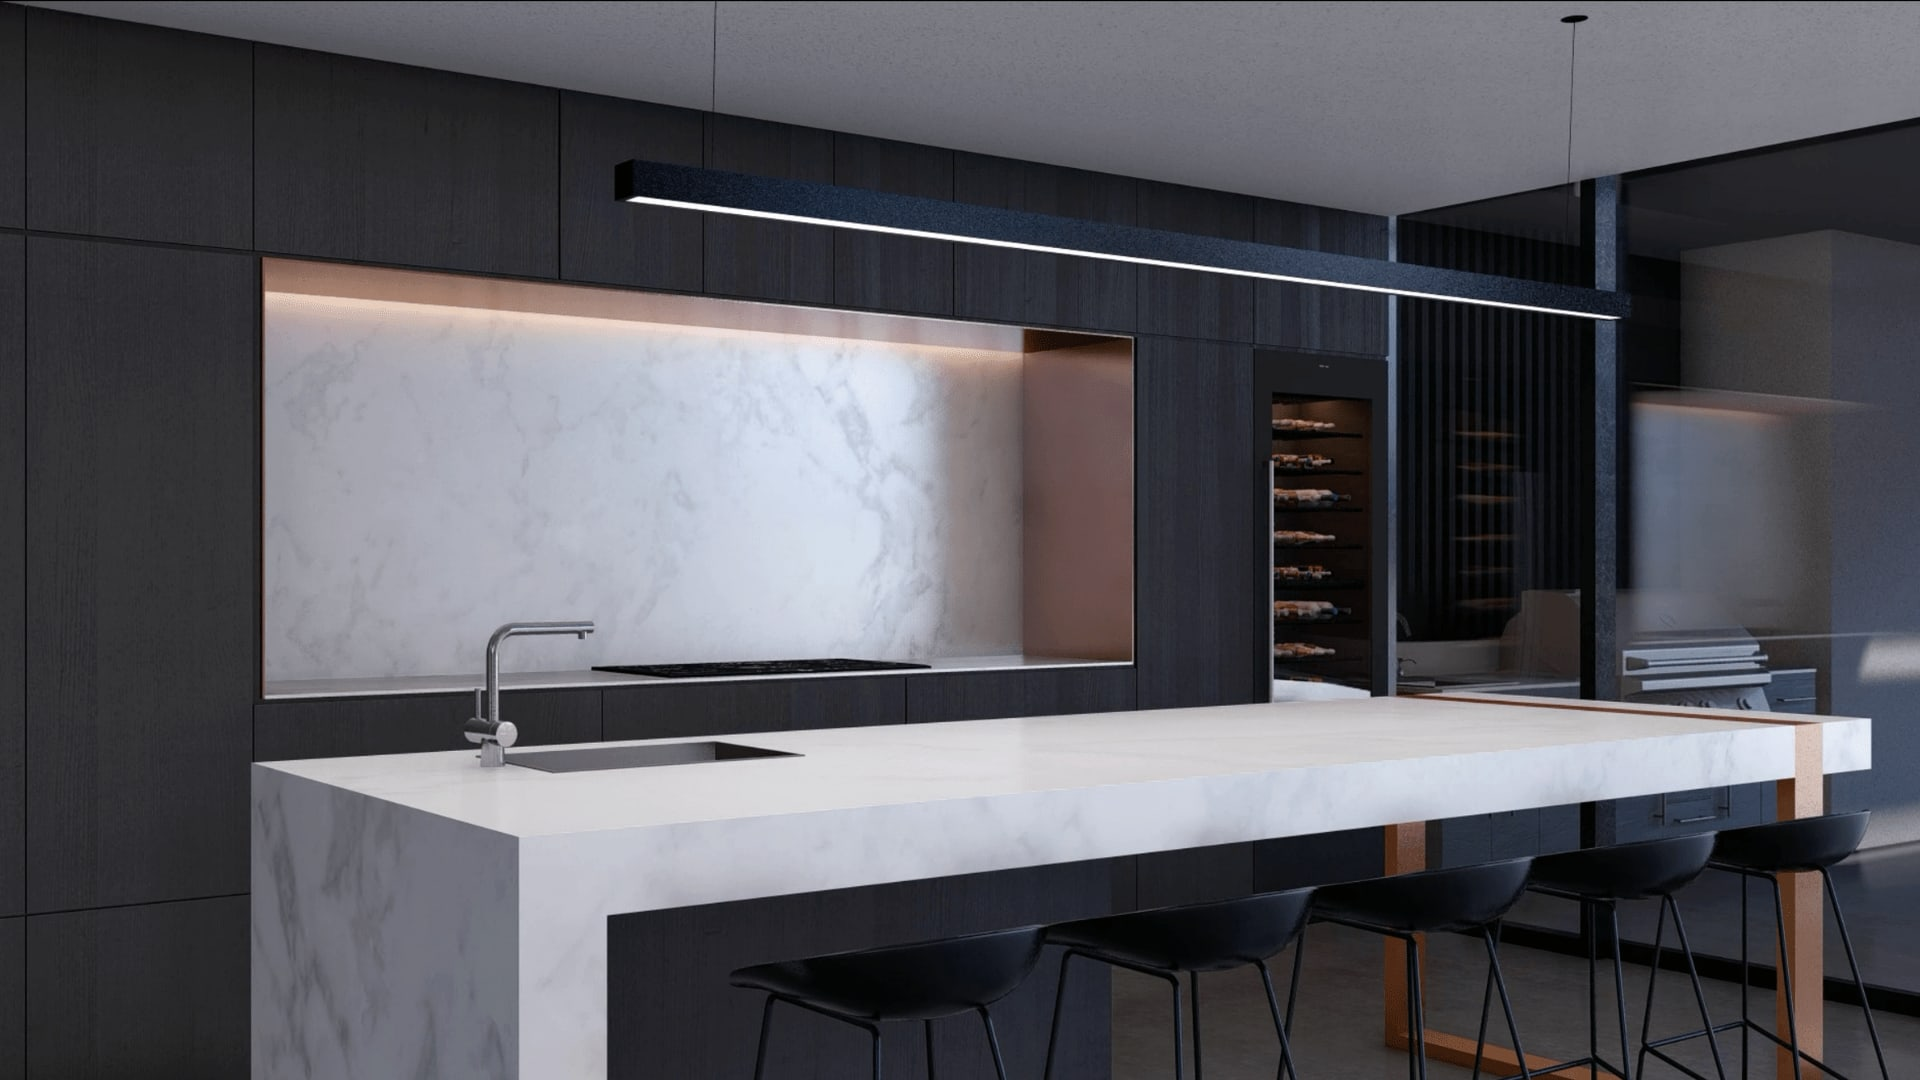 Photorealistic 3d Render of Architecturally Designed Home Kitchen from The Sanctuary Project (High Def)